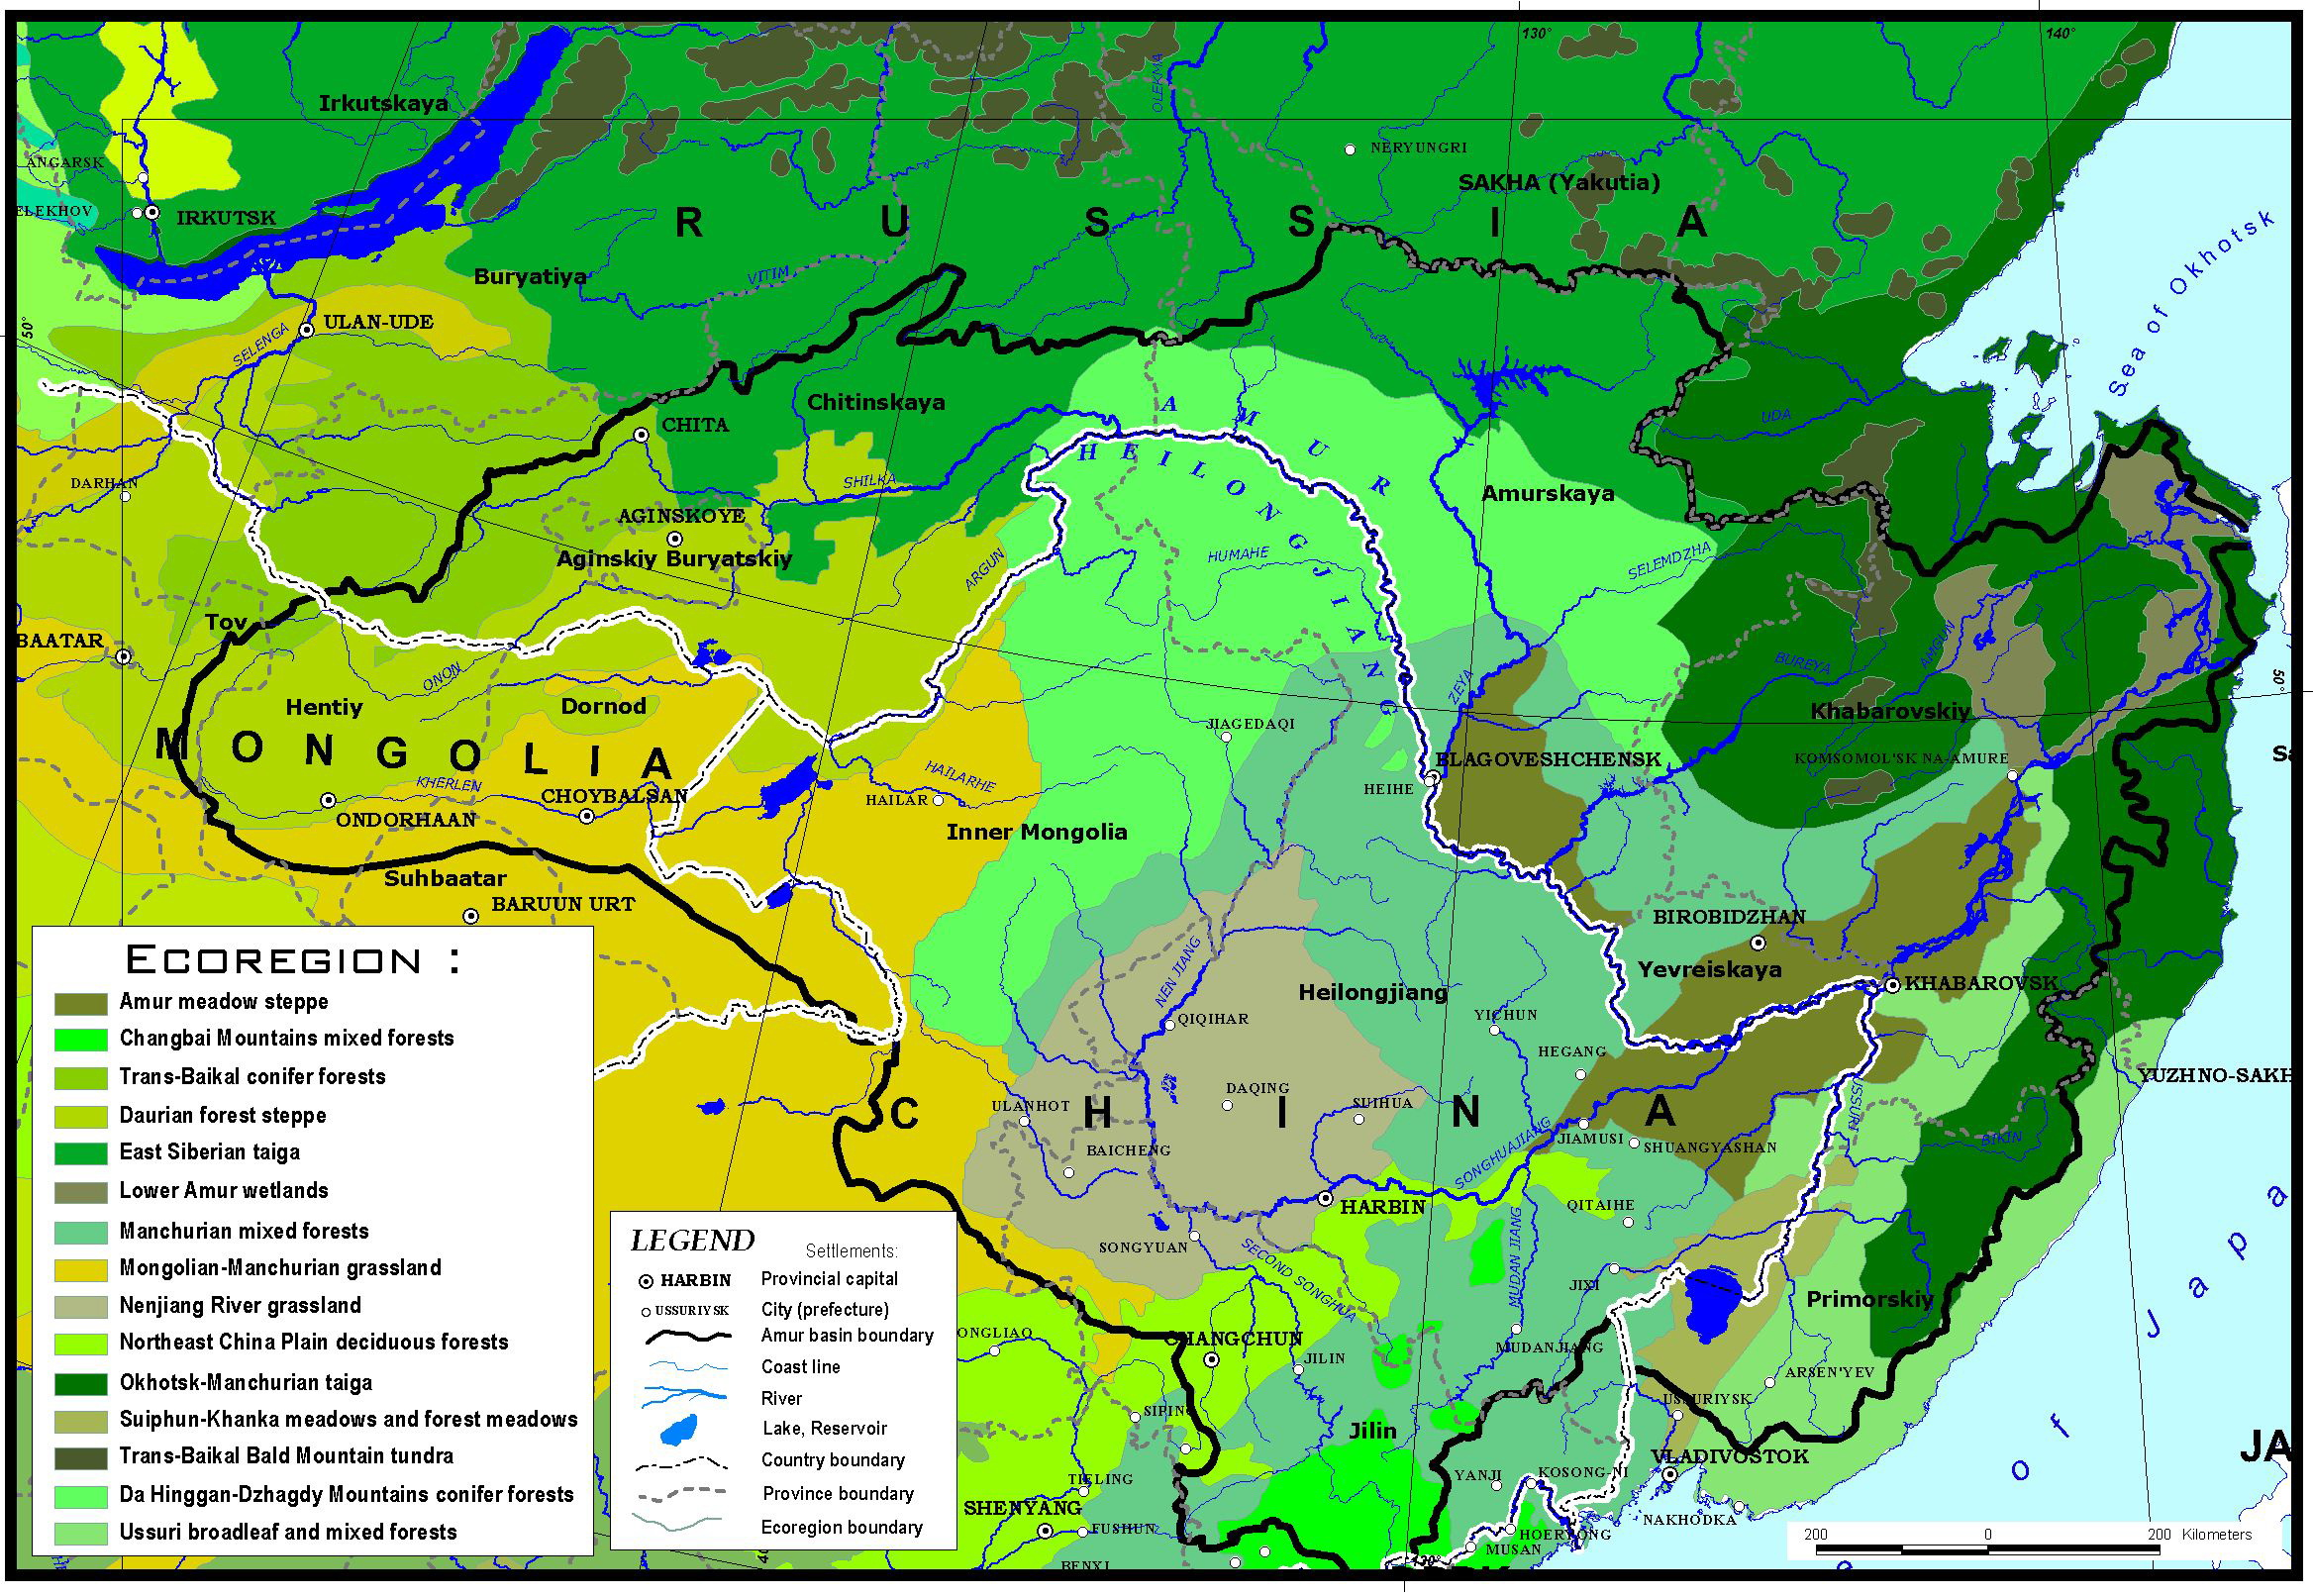 MAPS ON LAND COVER ECOSYSTEMS AND ECOREGIONS